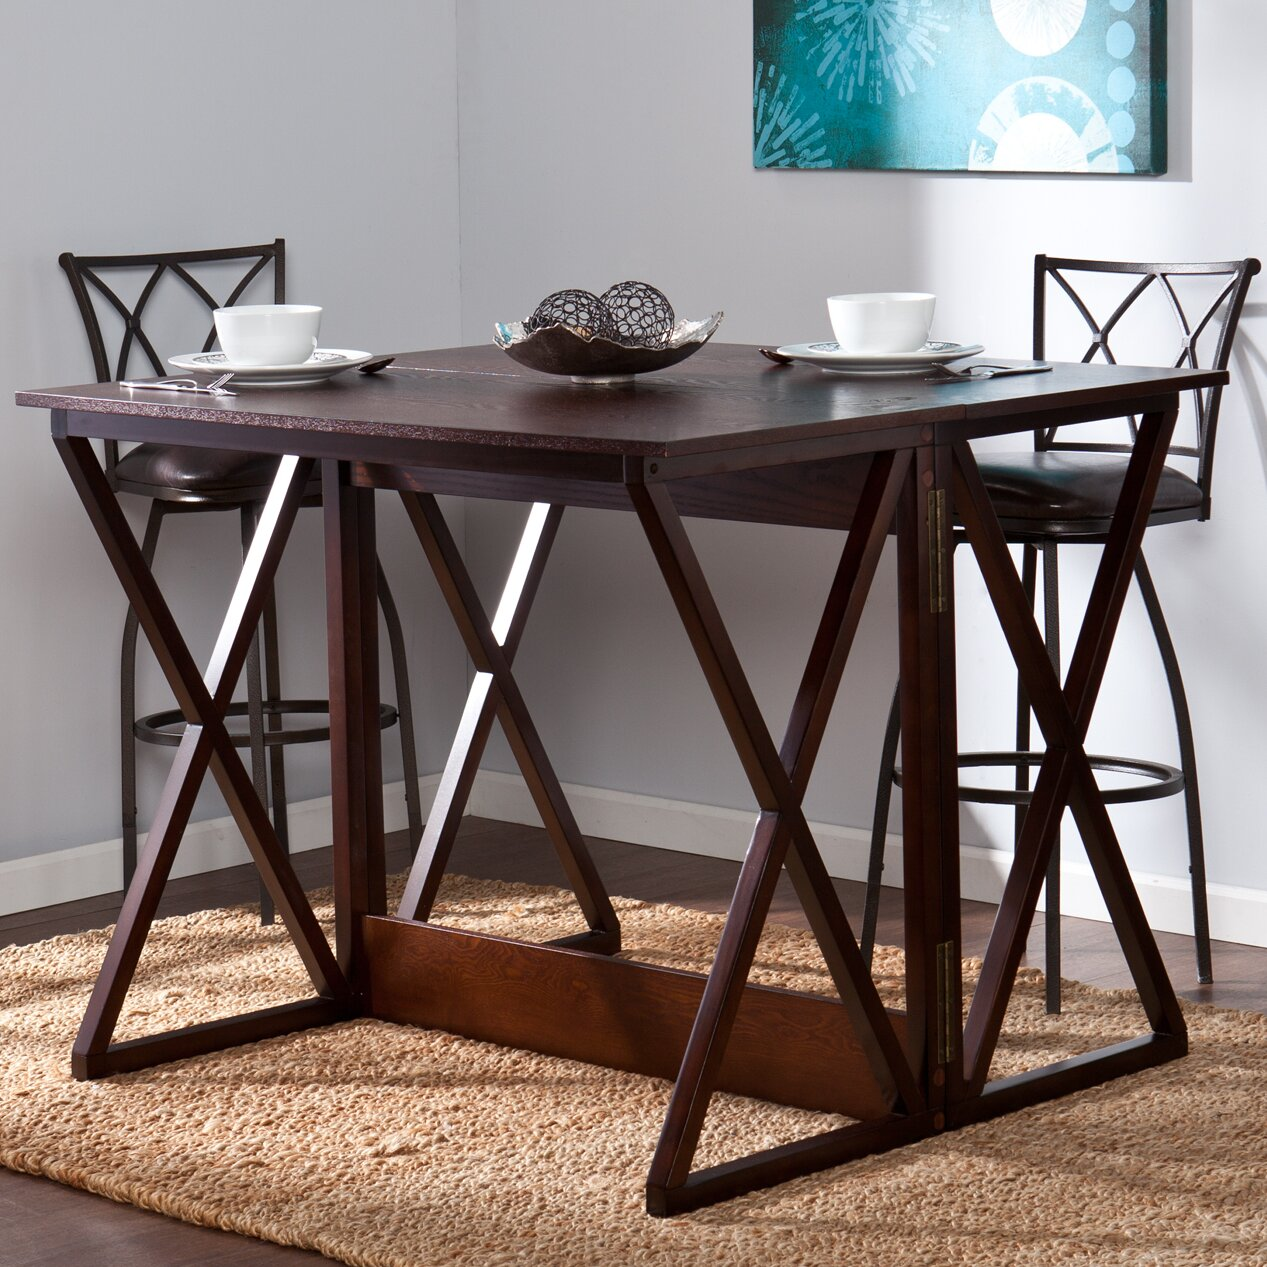 keraton counter height extendable dining table - Kitchen Table Height